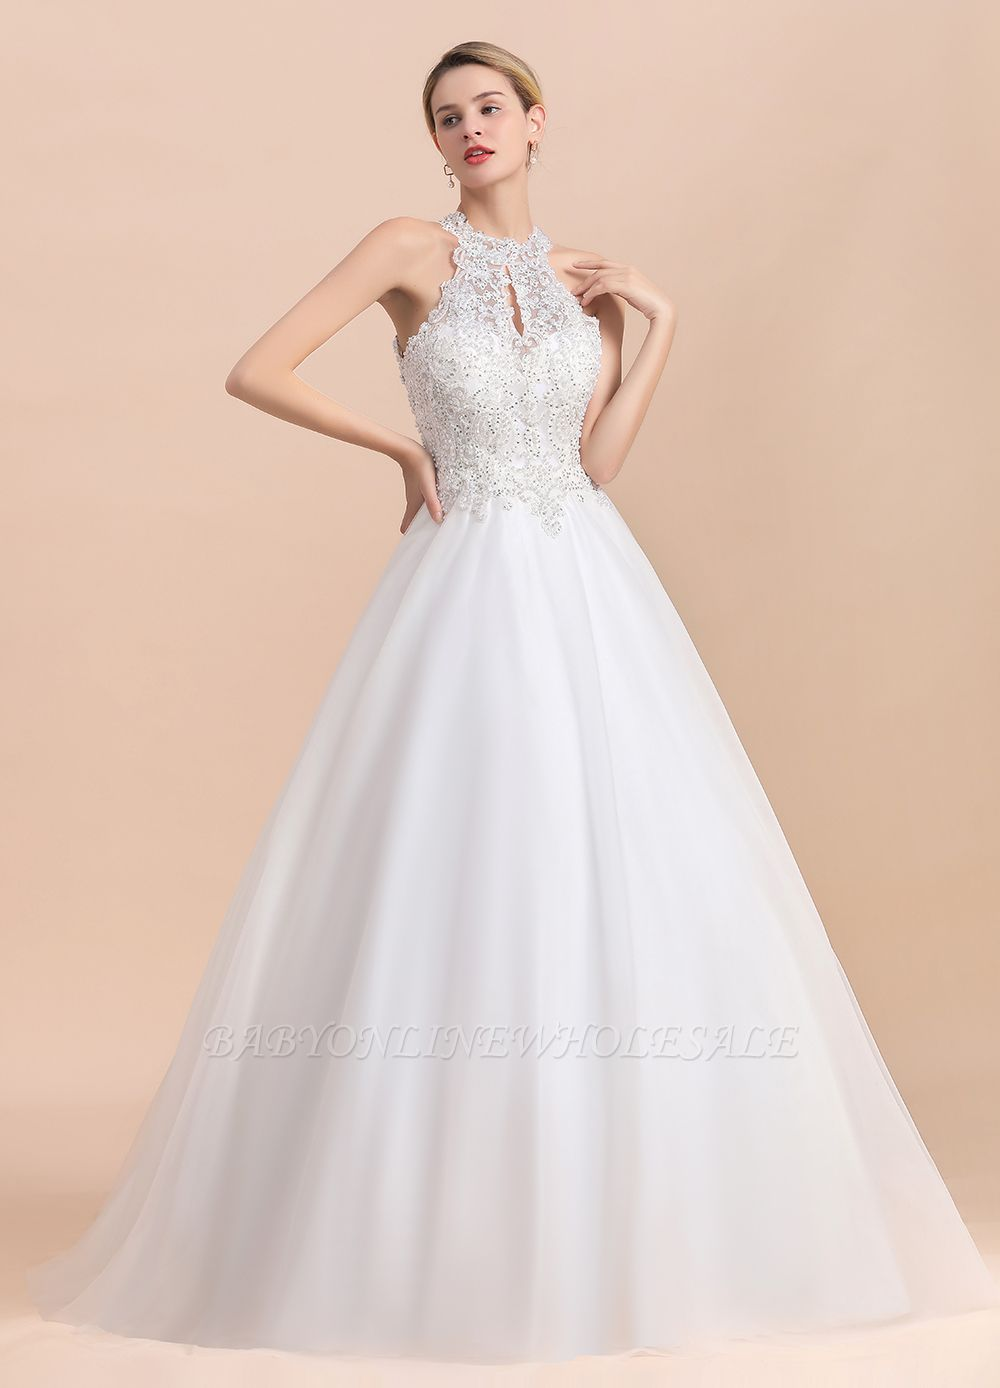 Gorgeous Halter Rhinstones Wedding Dress White Lace Appliques Tulle Garden Bridal Gowna